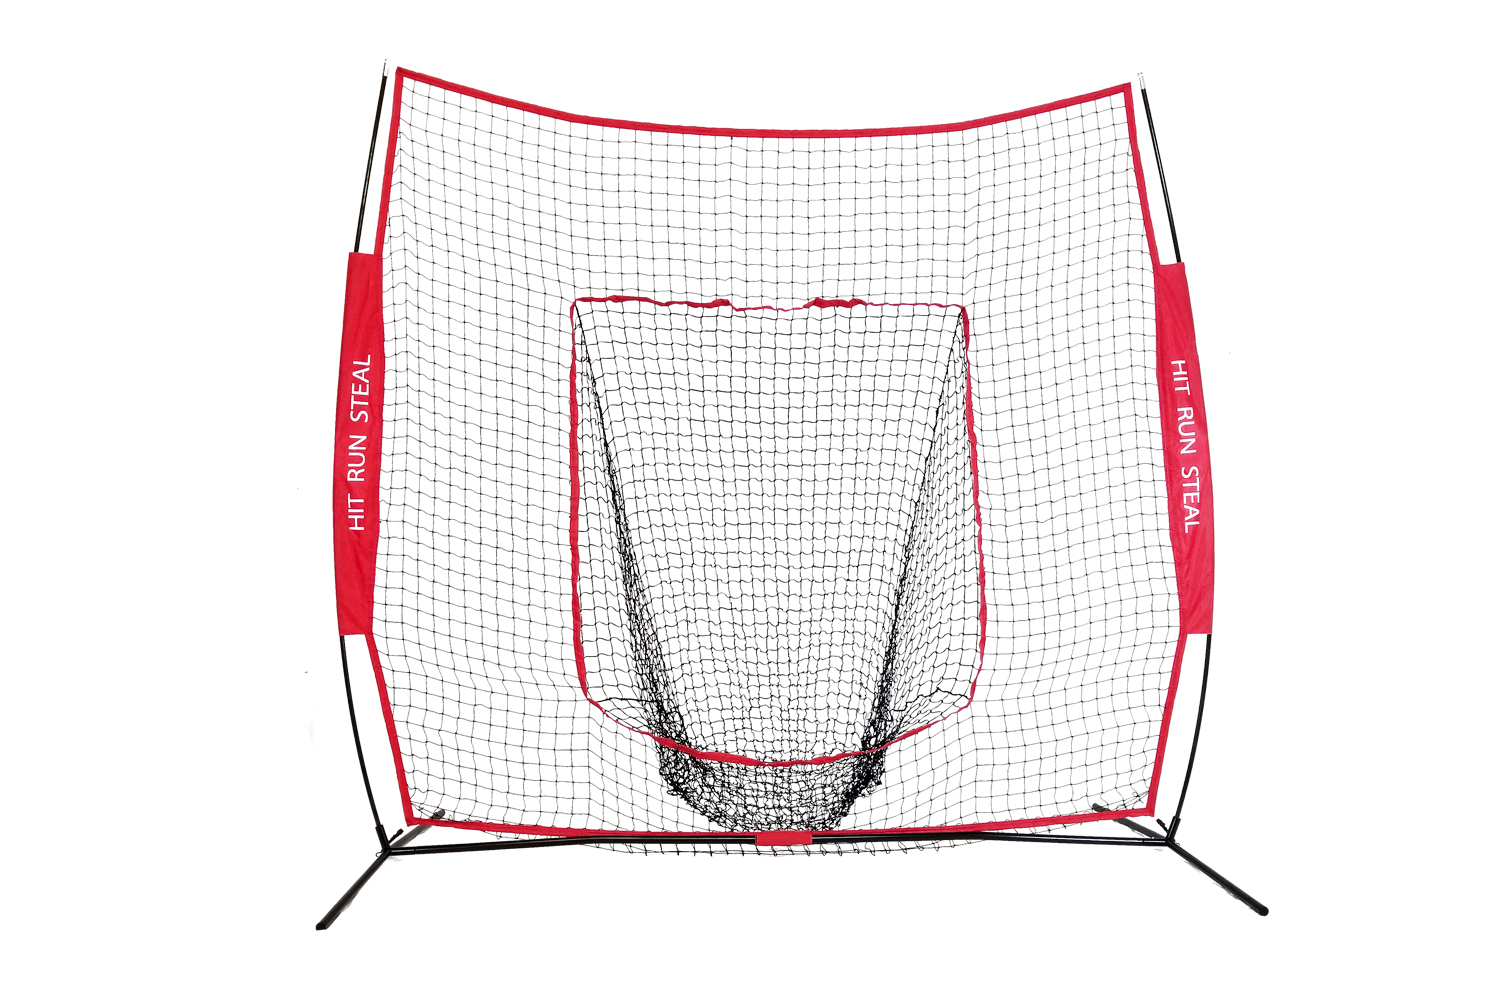 Sport Nets Baseball Softball Hitting and practice net- 7x7ft baseball pitching net, Large Mouth Net with Bow Frame... by Sport Nets